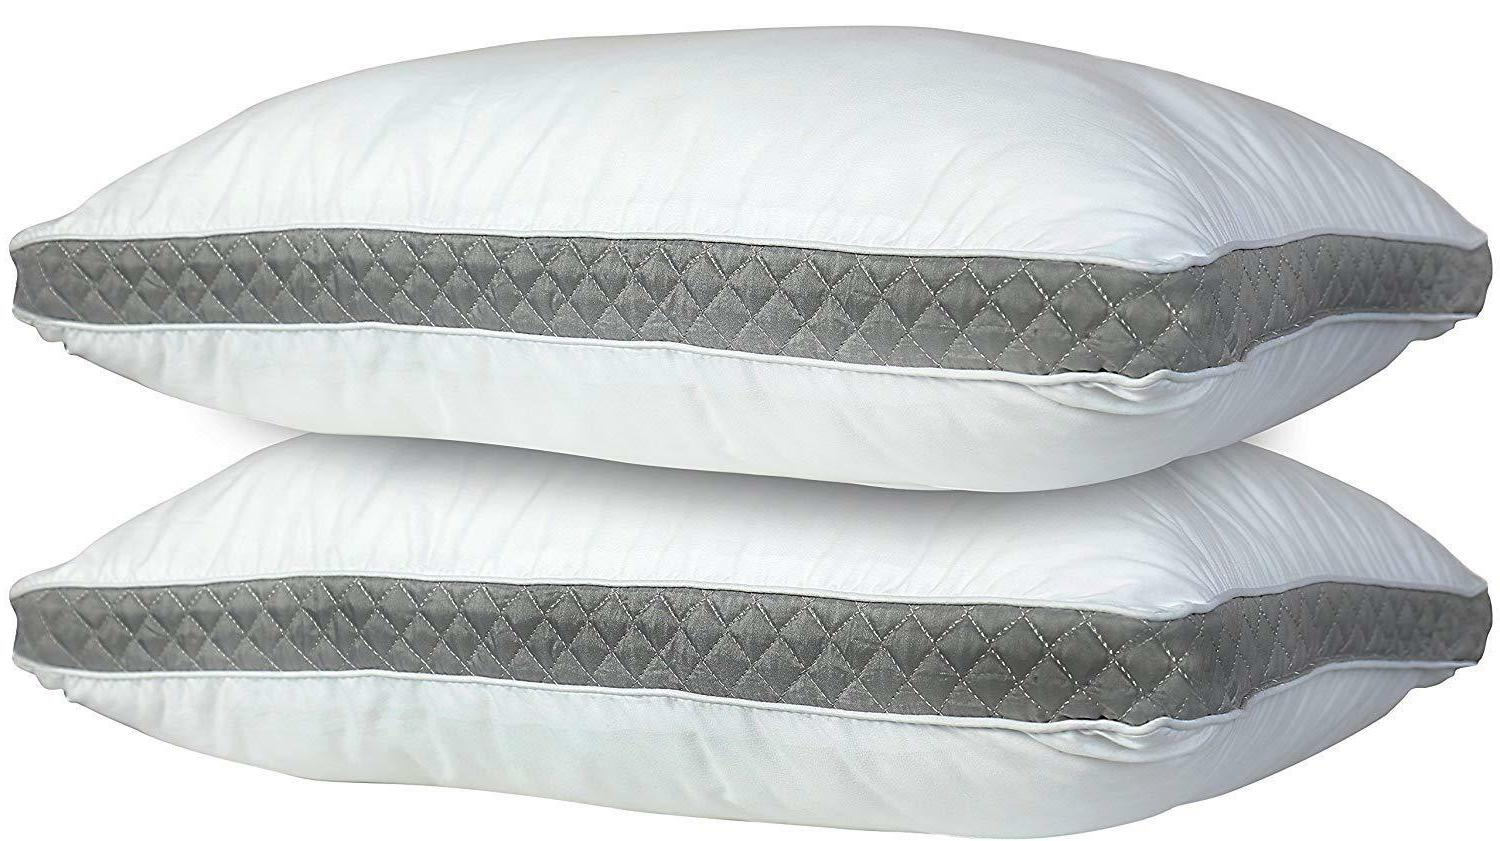 2 Pack Pillows Luxury Ultra Soft Gusseted Bed Pillows for Si